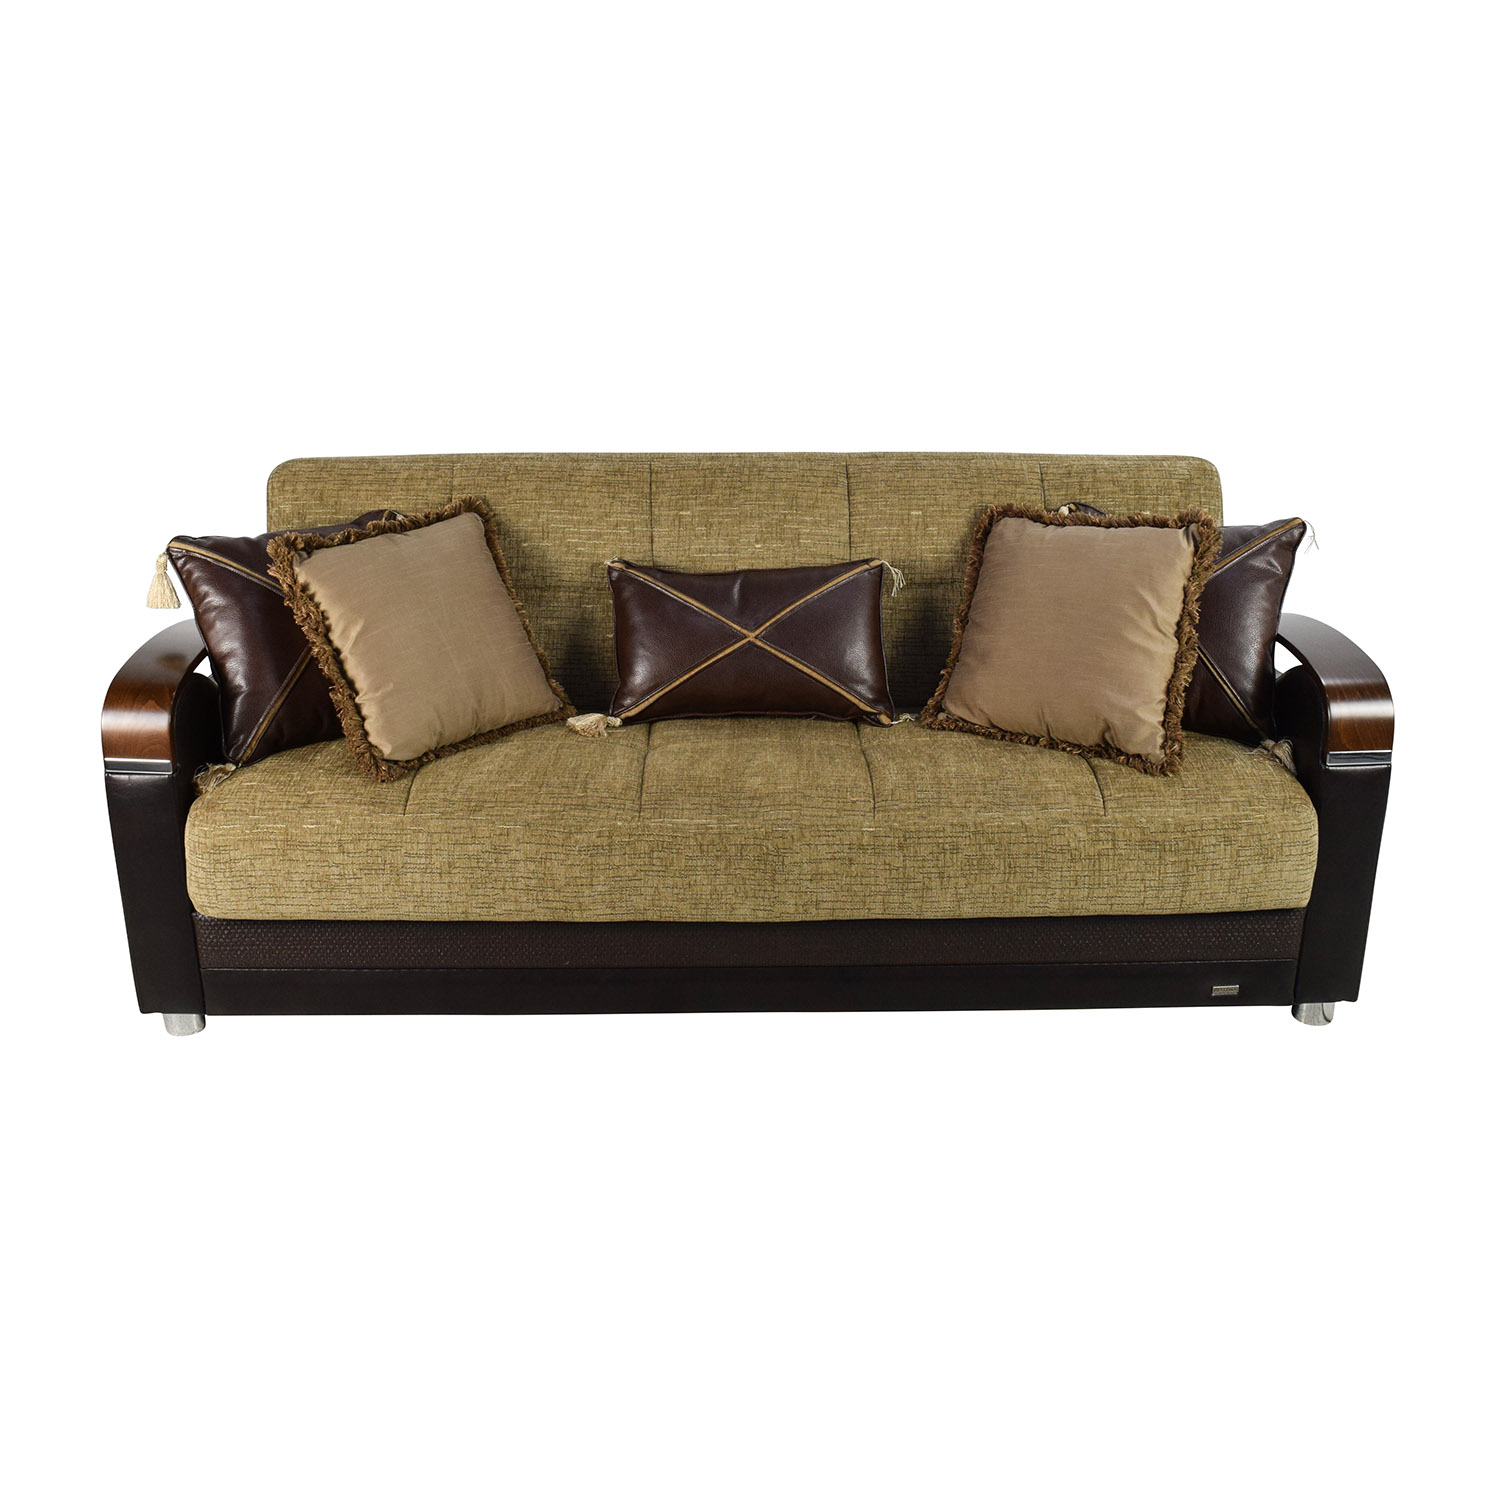 Bellona Bellona Luna Gold and Brown Sofa Sleeper with Pillows Sofas